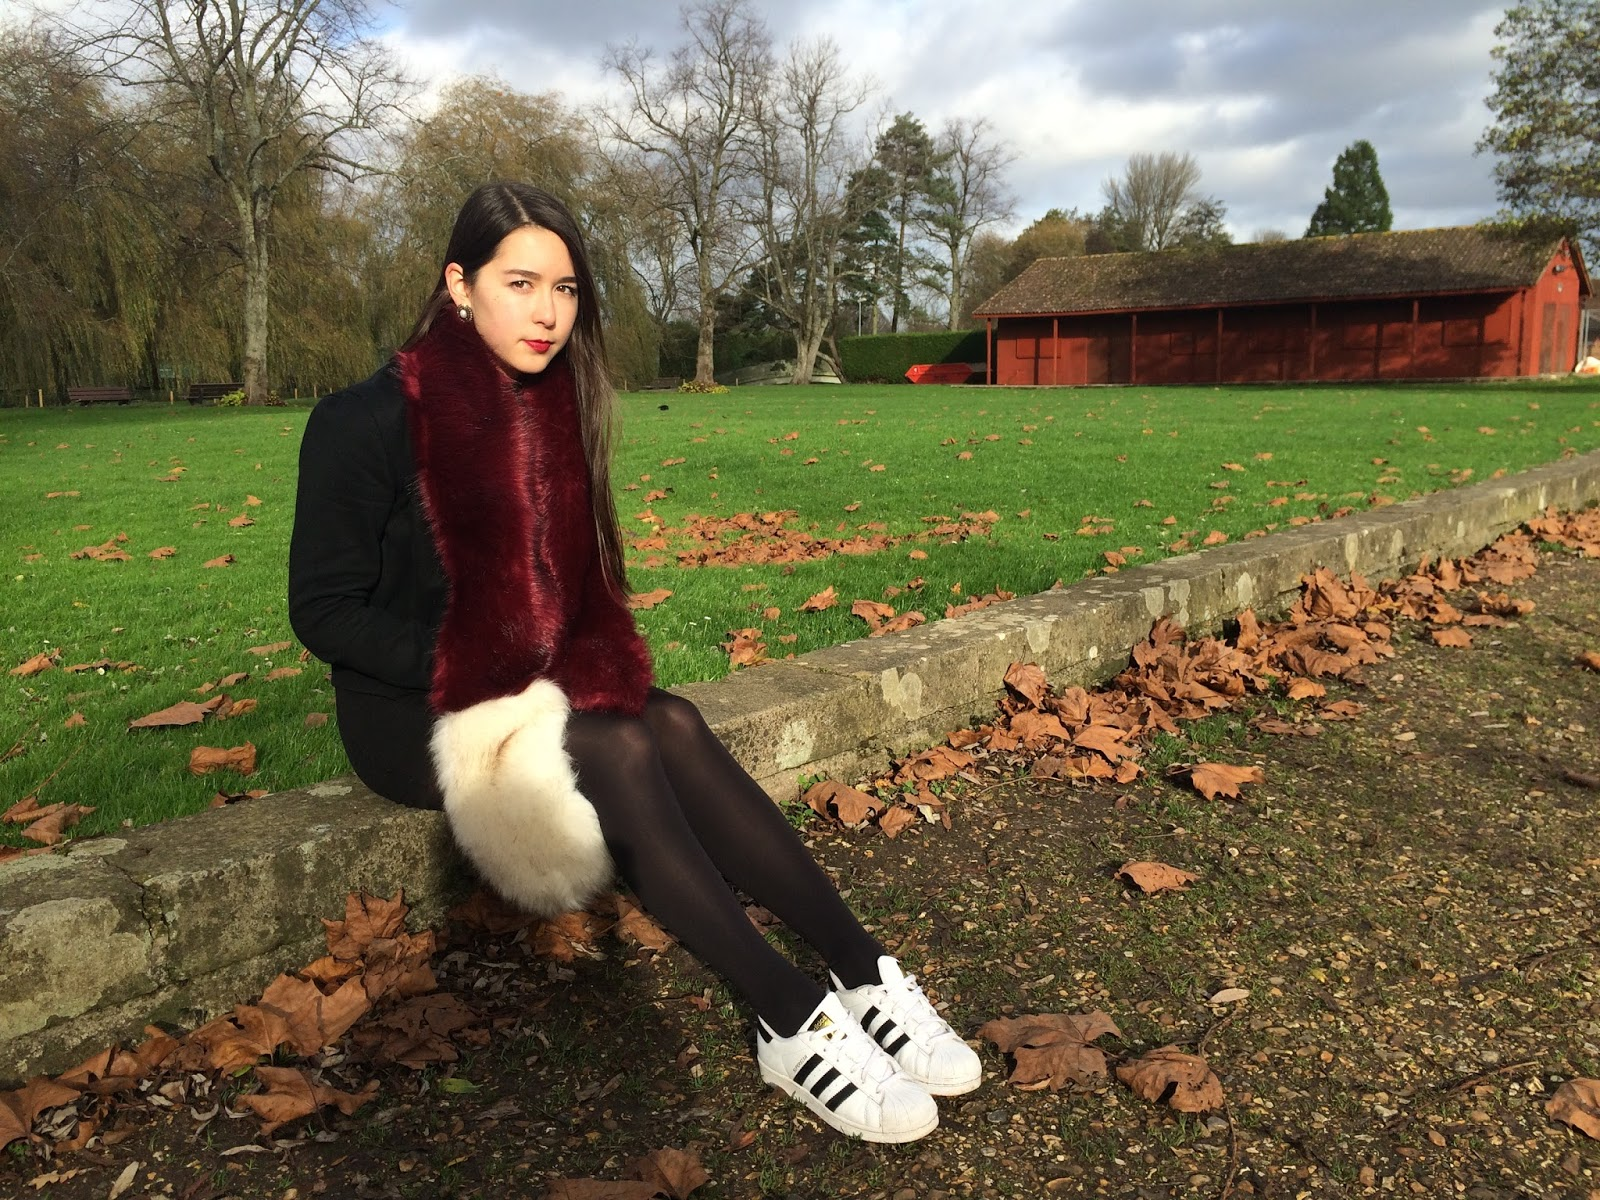 OOTD, street style outfit post, look, fashion blogger, fur stole, adidas superstars